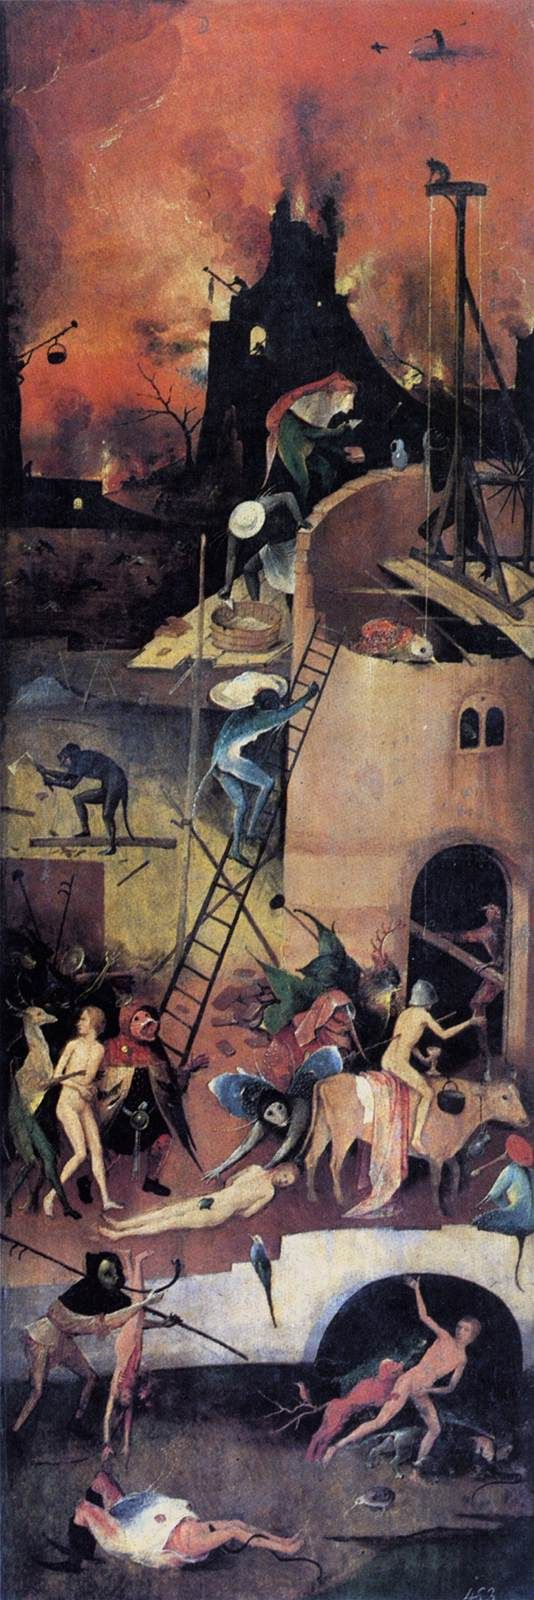 Triptych of Haywain (right wing)  Hieronymus Bosch, 1500